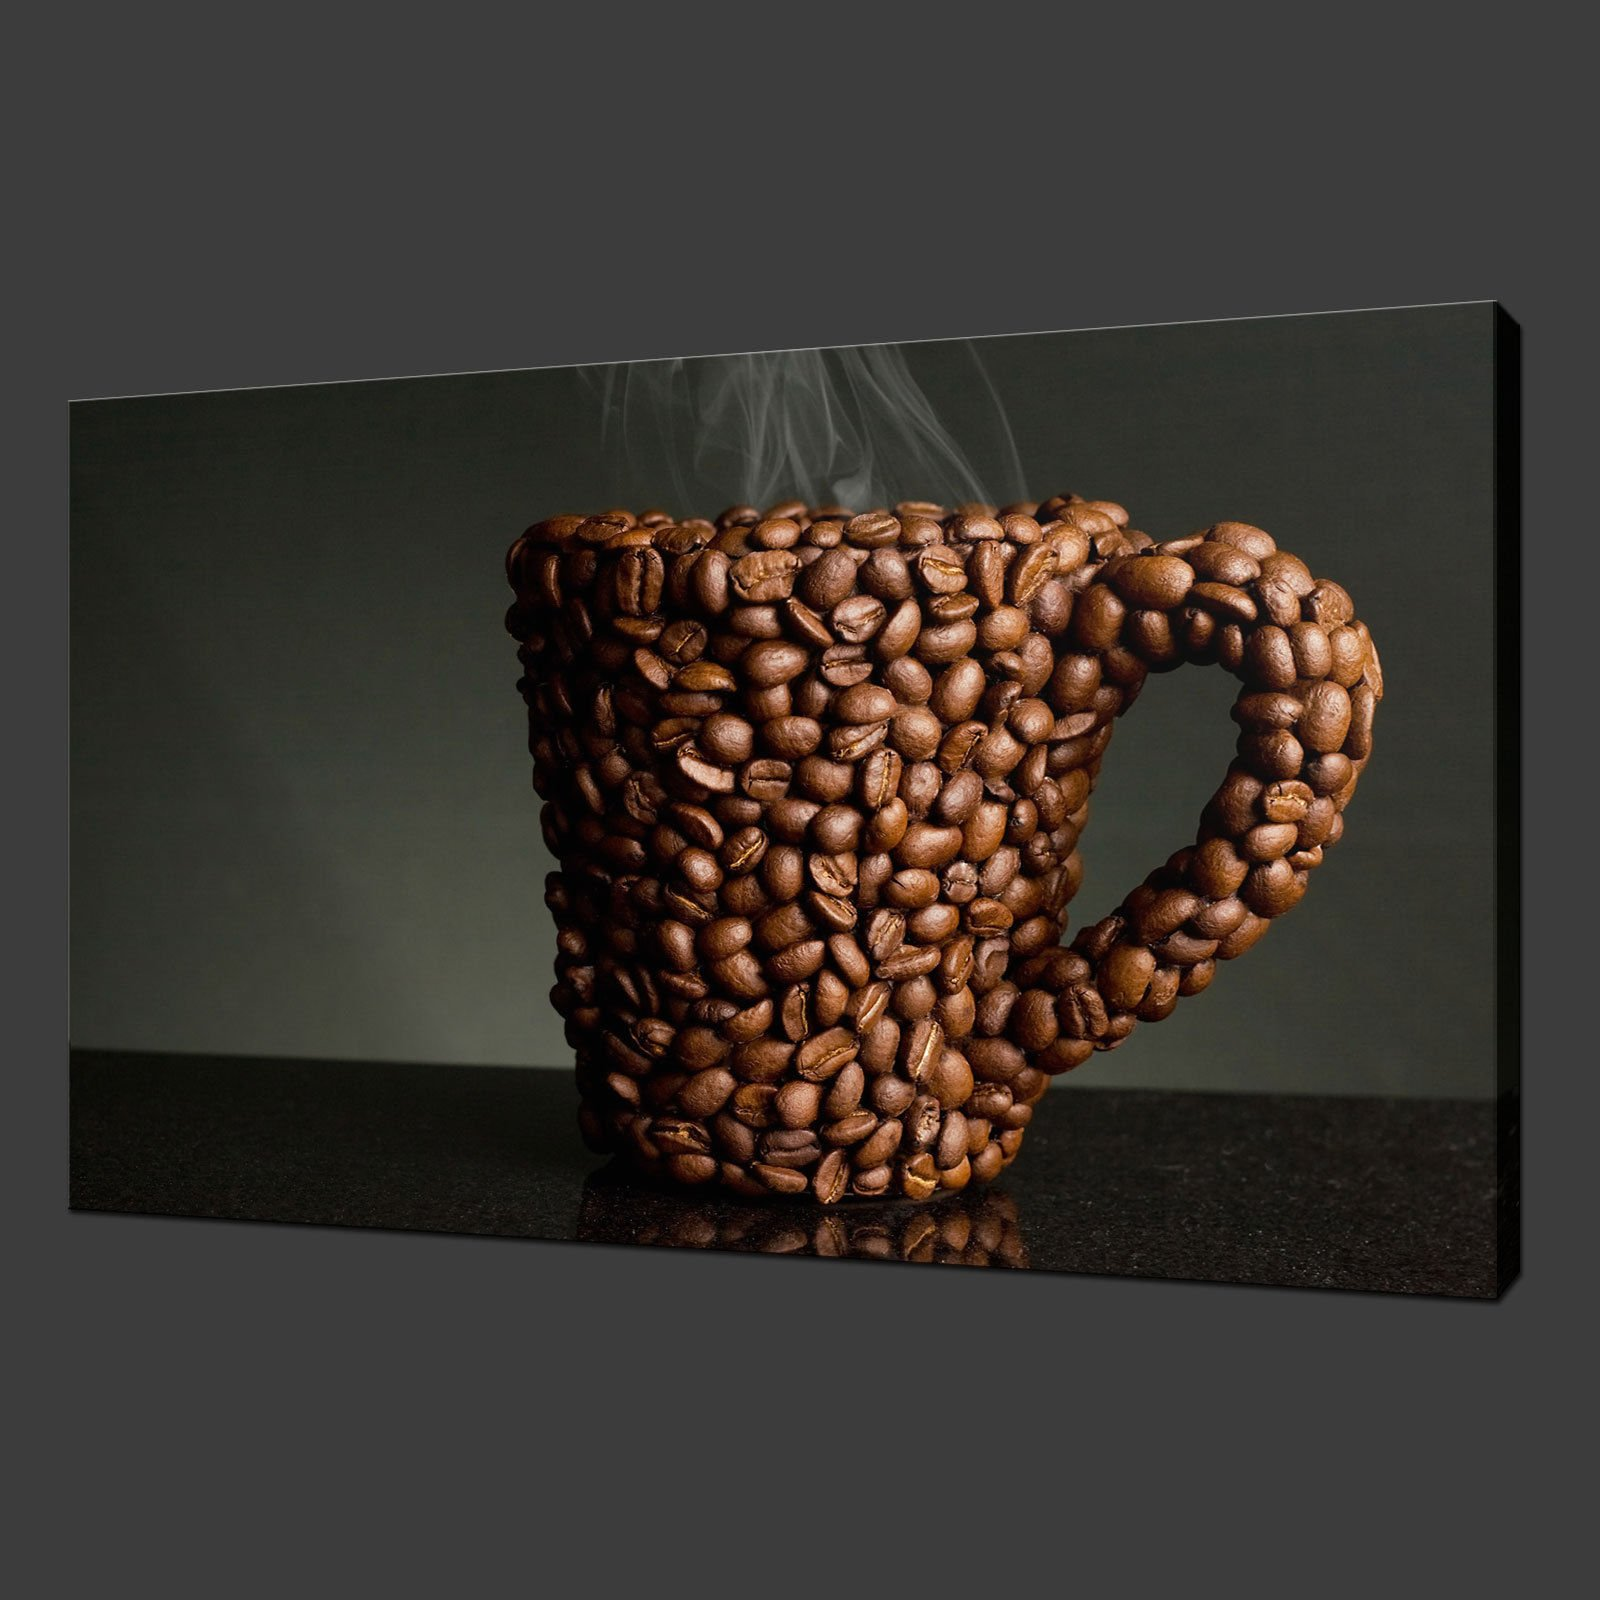 Kitchen Canvas Wall Art coffee mug kitchen canvas wall art pictures prints 30 x 20 inch